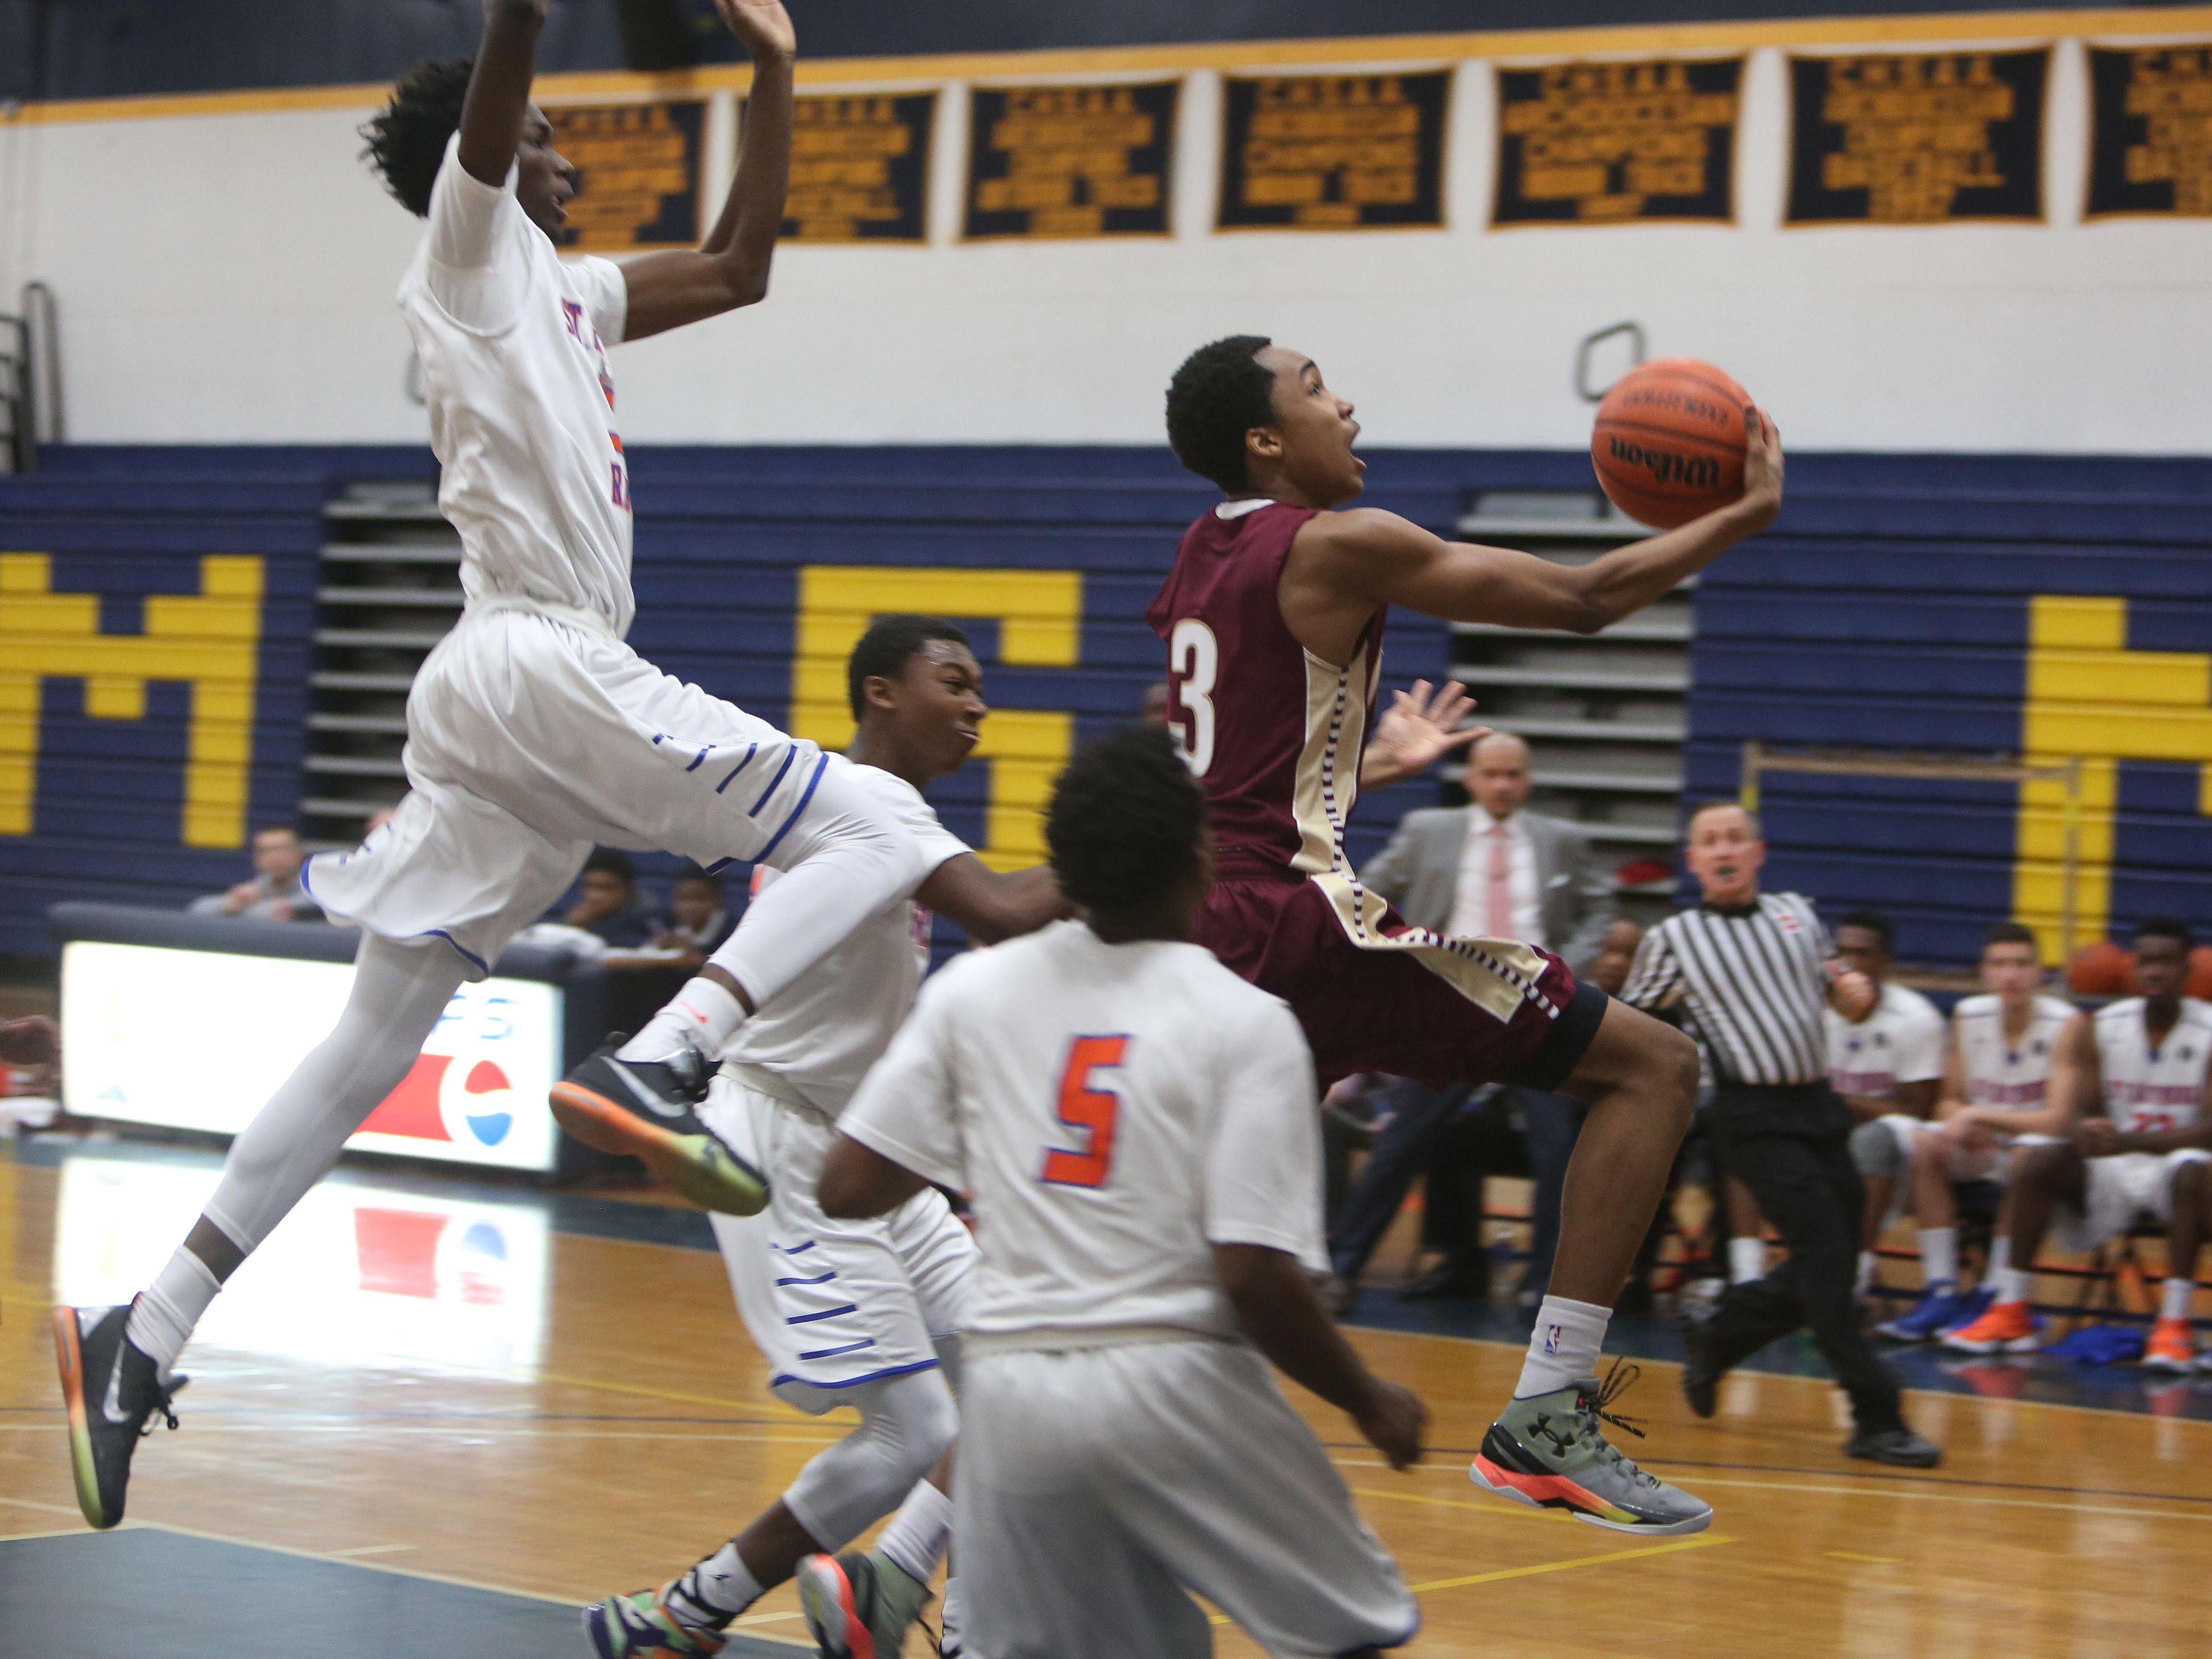 Iona's Bryce Wills (3) drives to the basket against Saint Raymond in CHSAA Archdiocesan tournament semifinal at Mount Saint Michael Academy in the Bronx Feb. 23, 2016. Saint Raymond won the game 55-47.